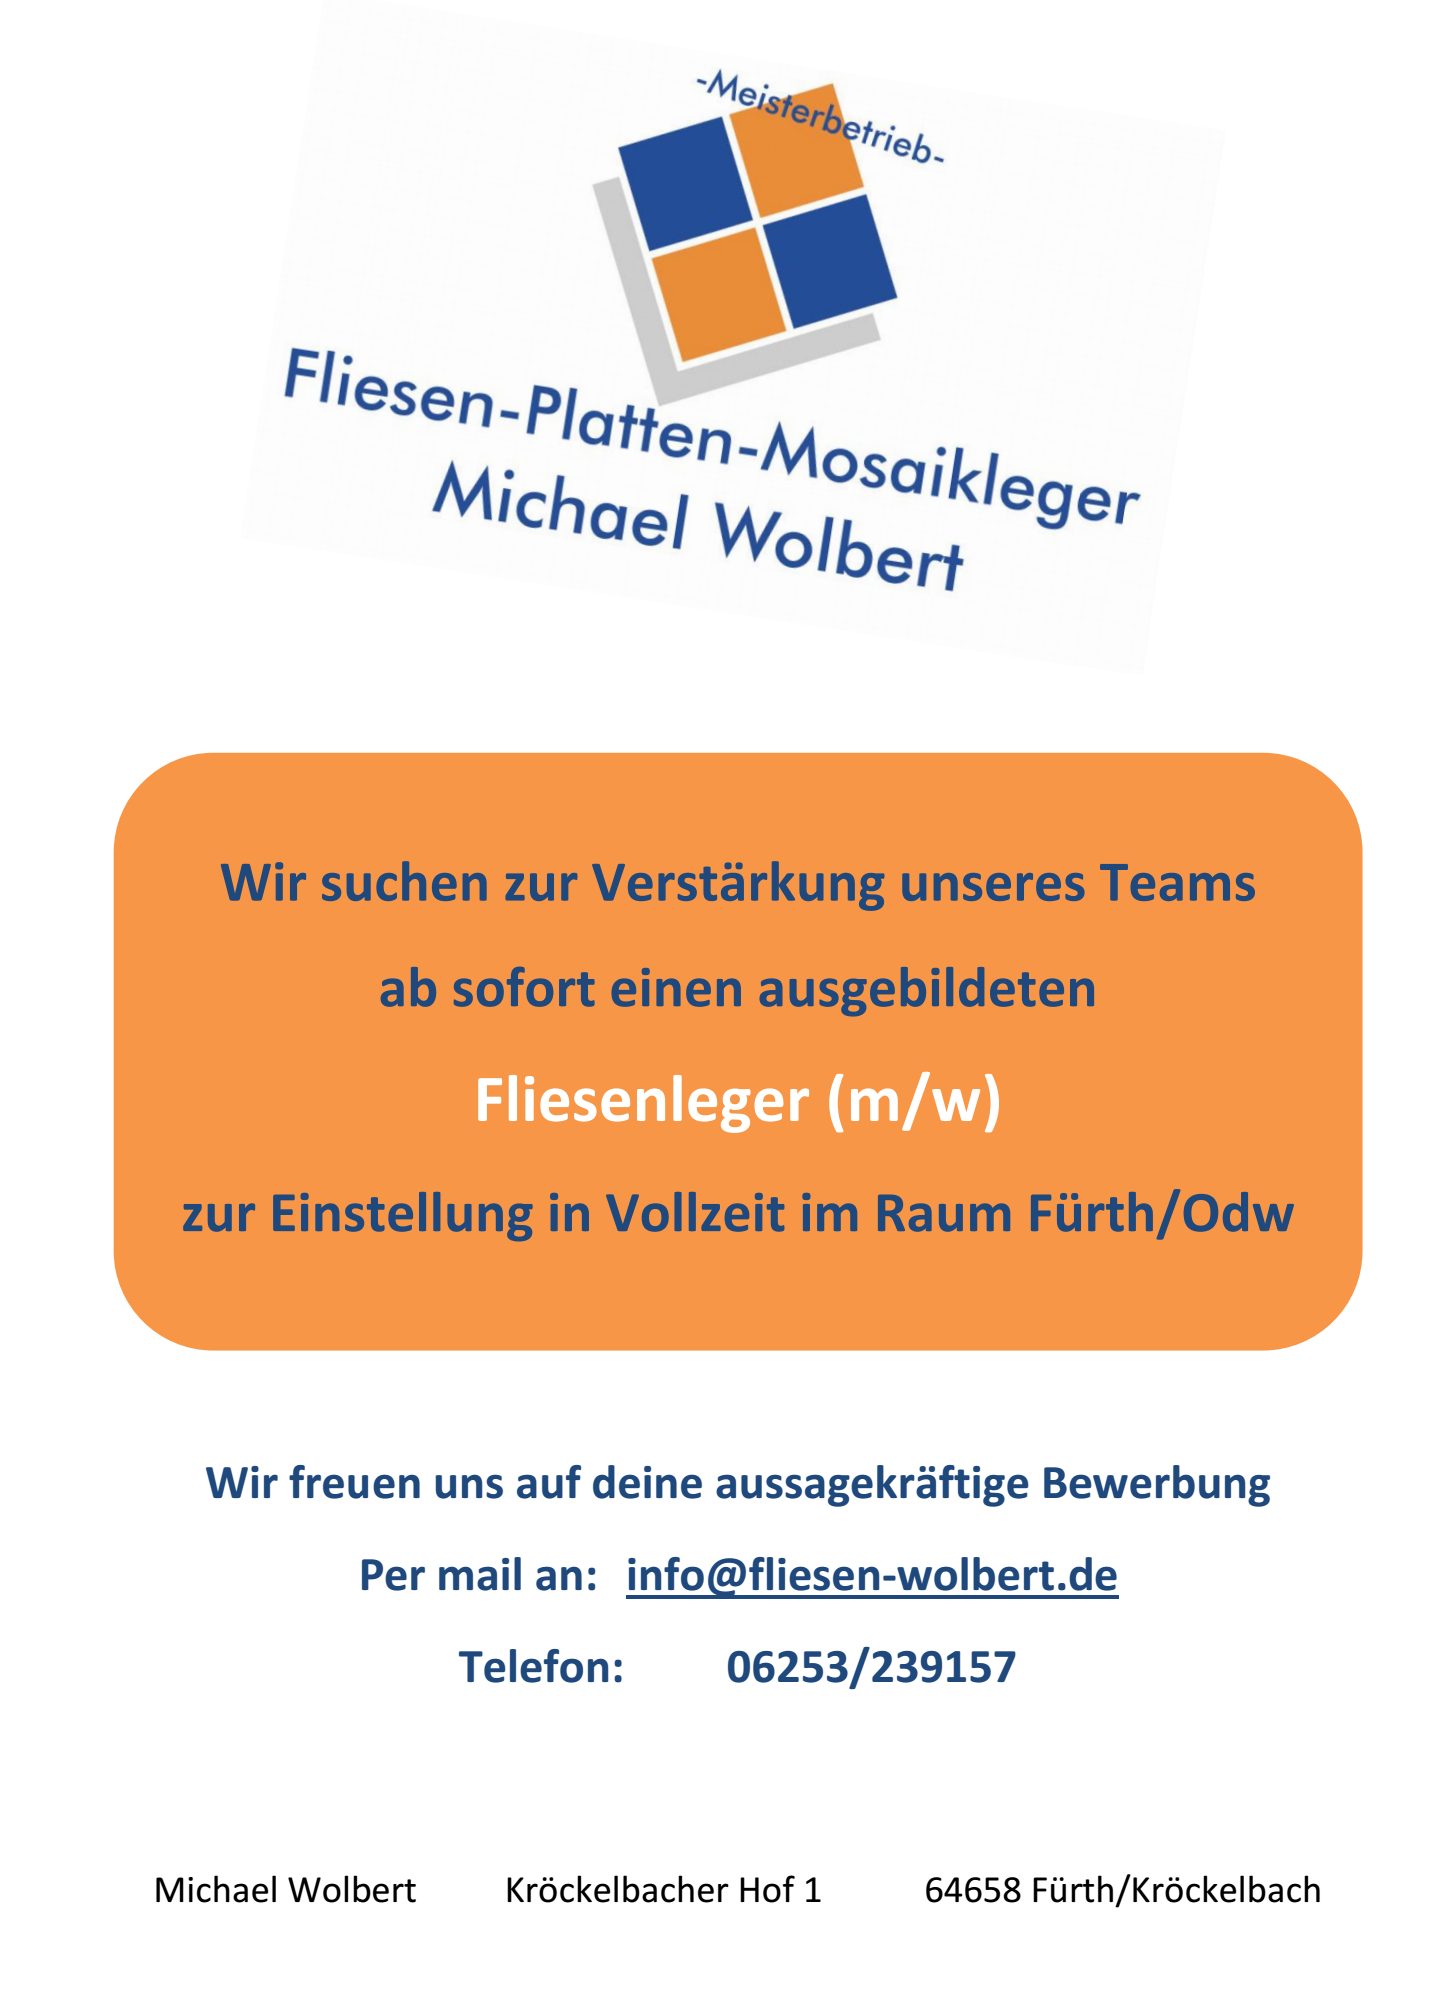 Fliesenleger gesucht  Fliesenleger gesucht